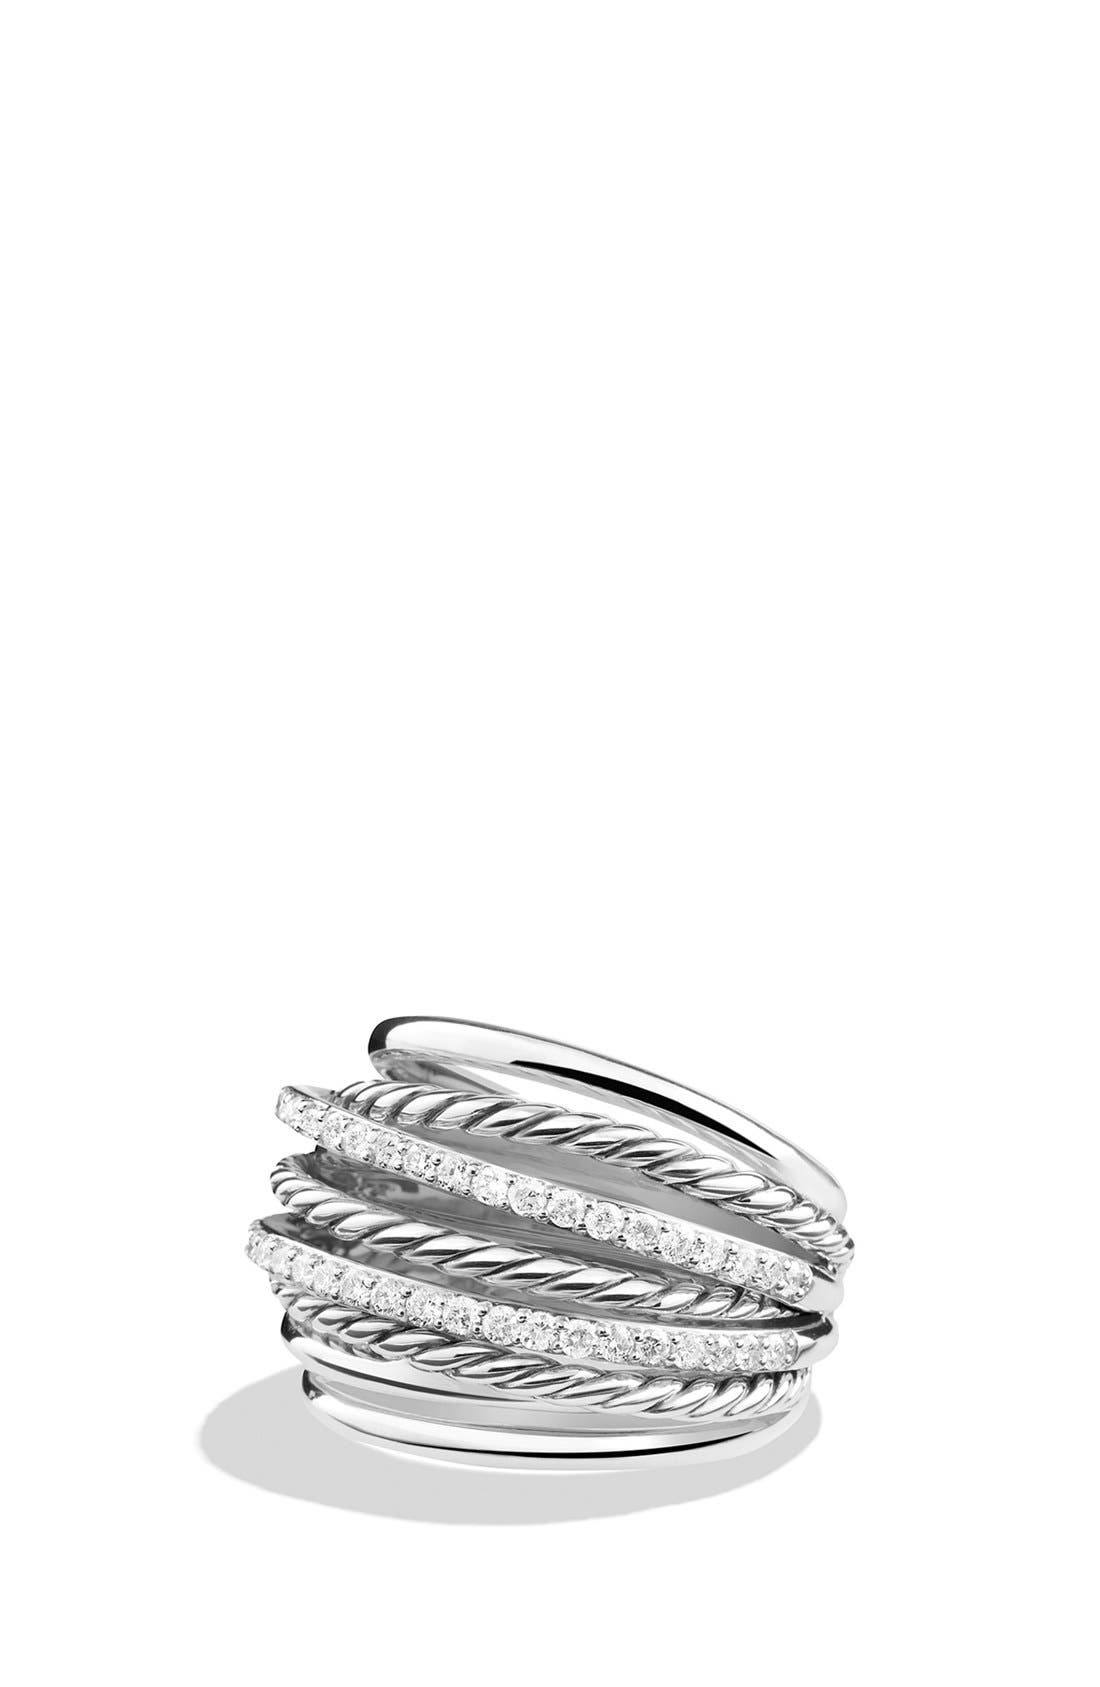 David Yurman 'Crossover' Dome Ring with Diamonds